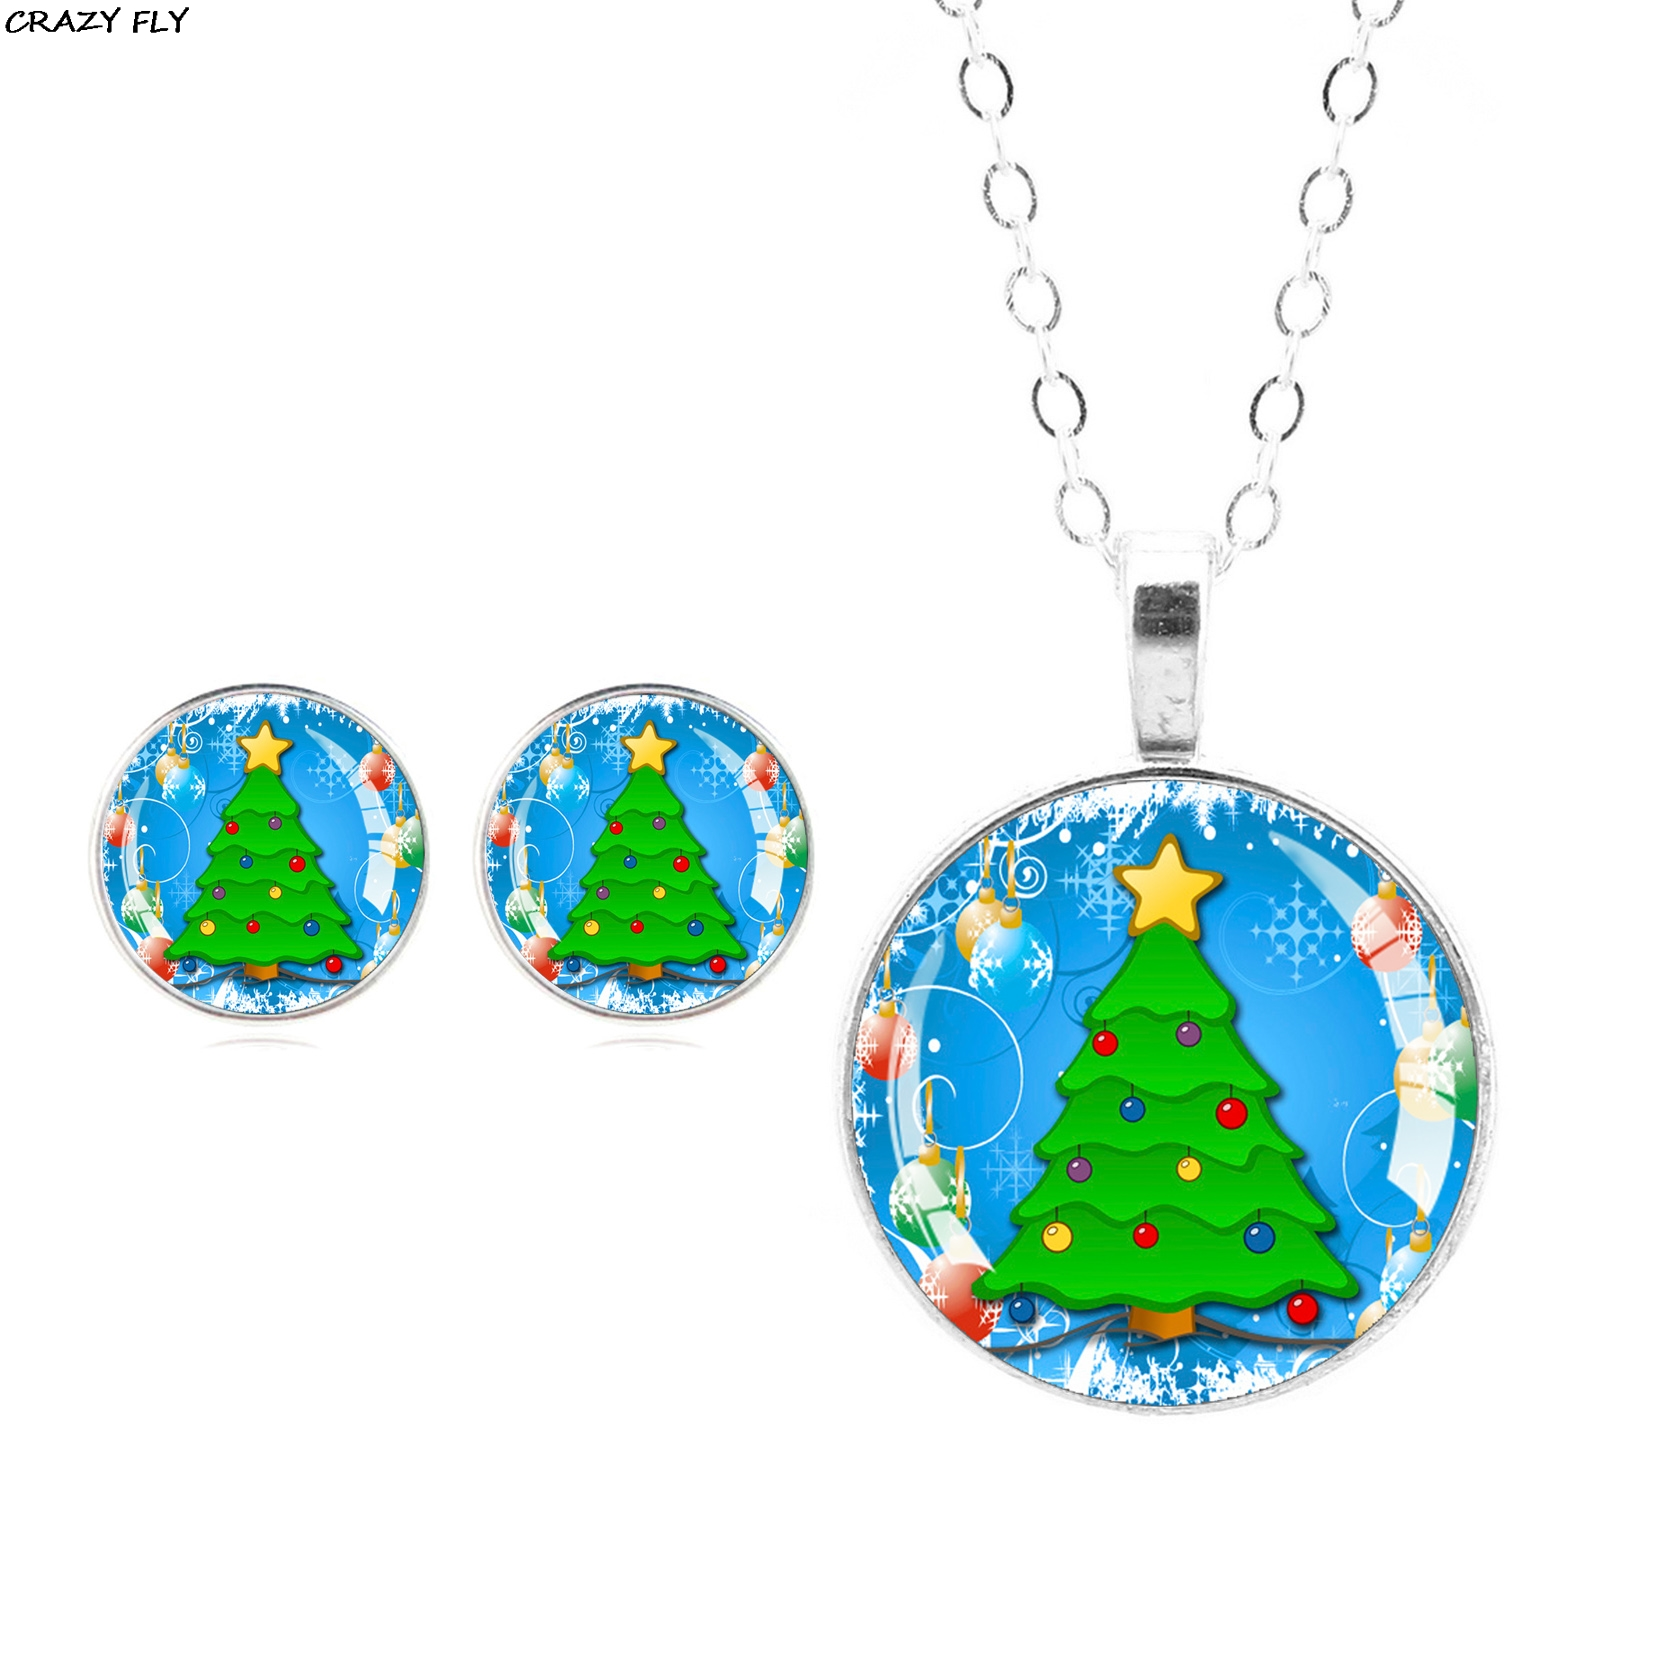 CRAZY FLY New Fashion Women Christmas Tree Glass Stud Earrings Cabochon Pendant Necklace Jewelry Set Holiday Gift 2018